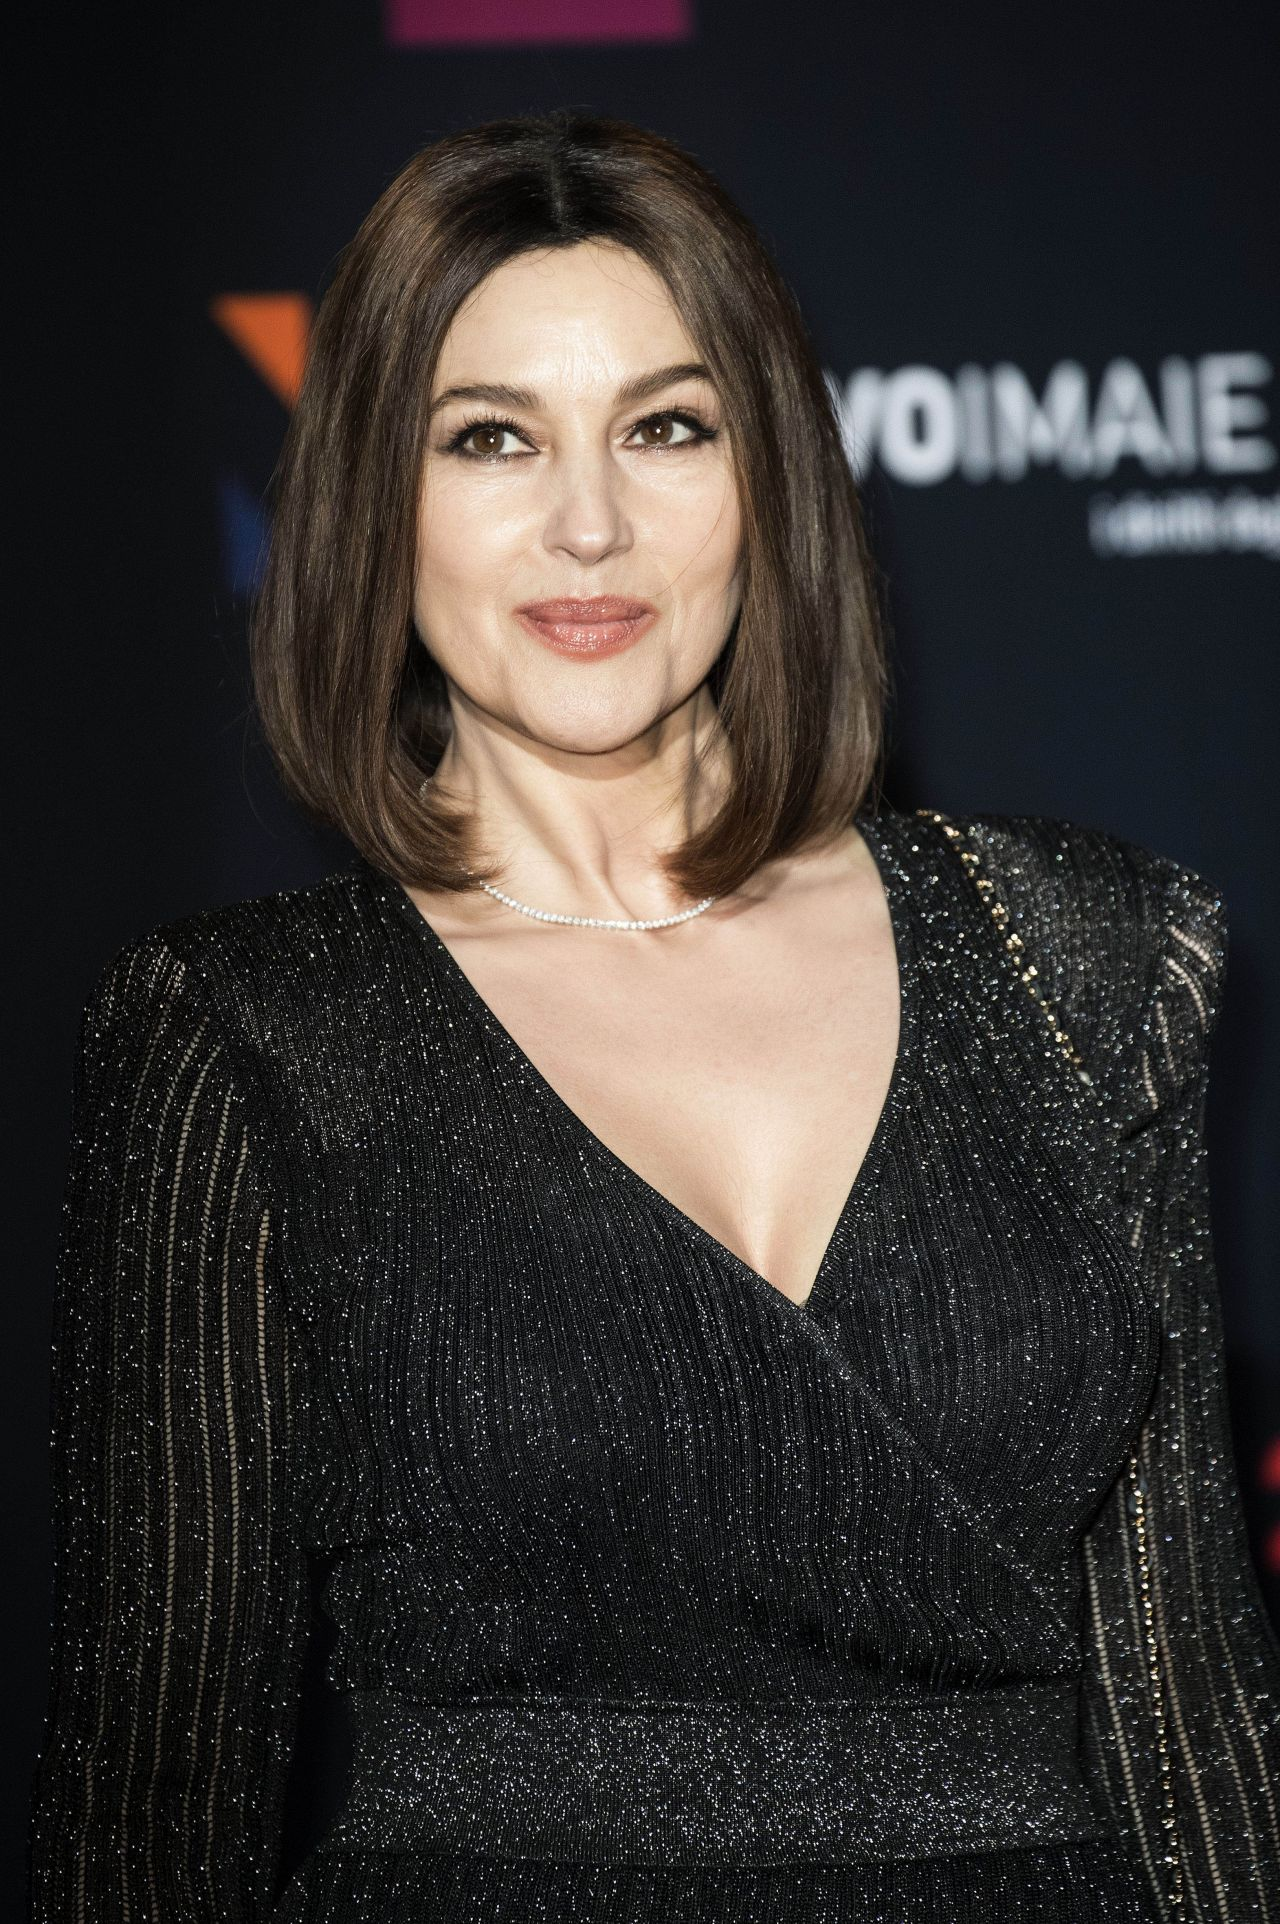 Monica Bellucci – 2018 David di Donatello Awards in Rome Monica Bellucci